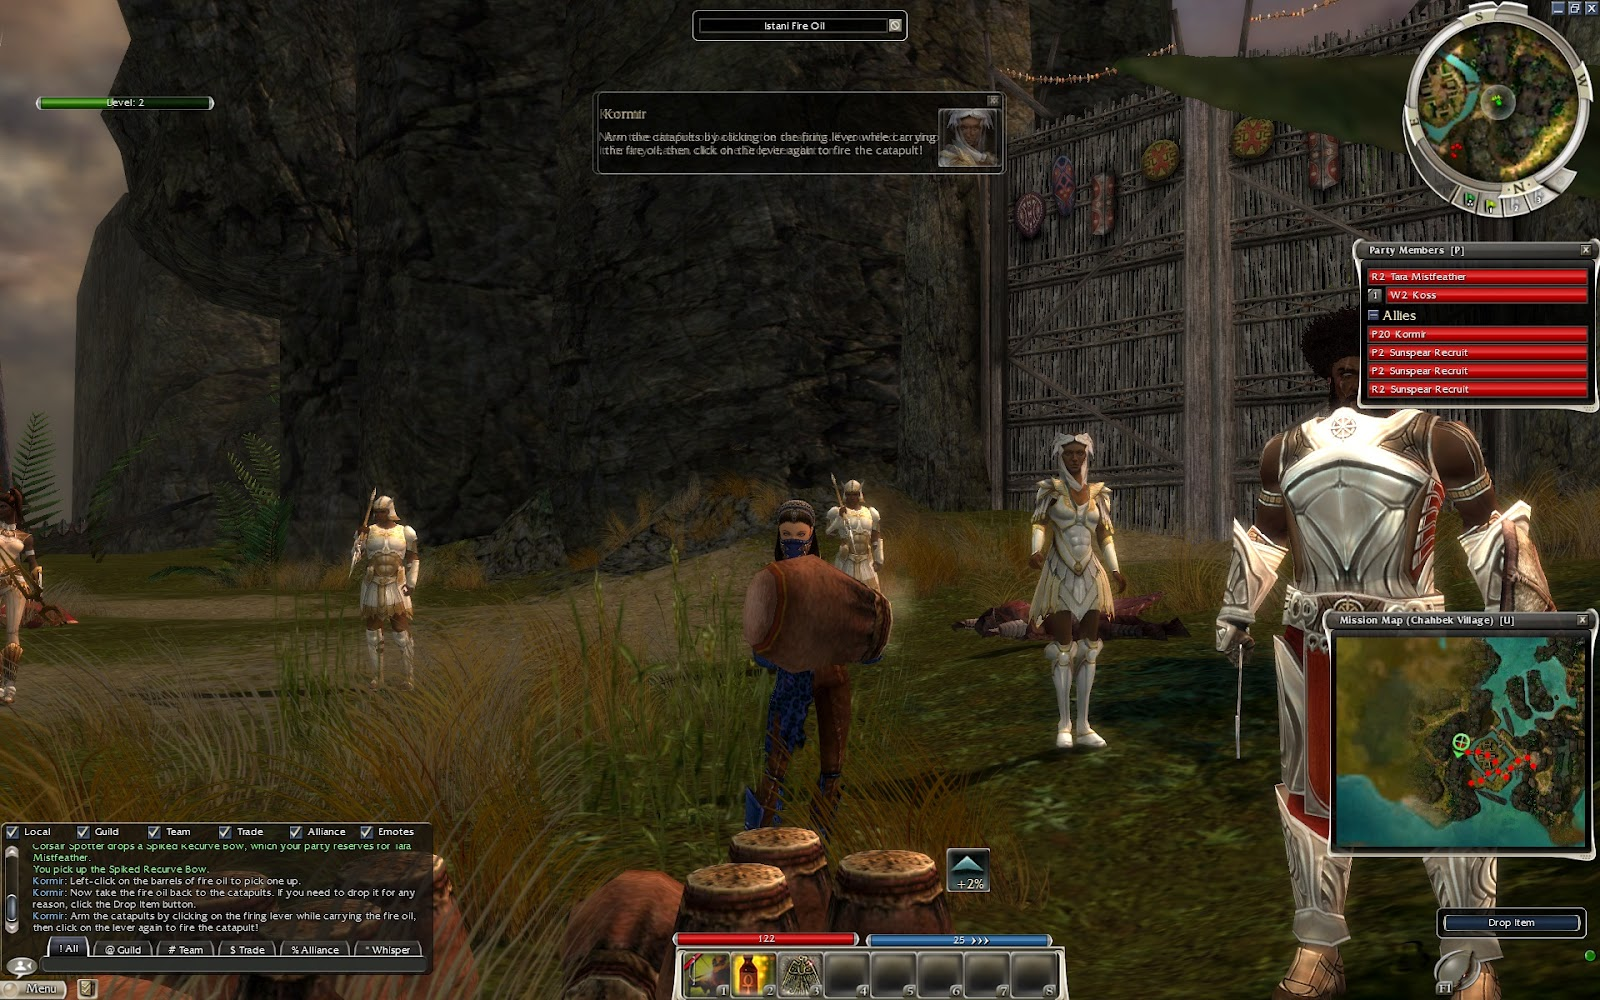 Guild wars hall of monuments disabled dating. patronizing a prostitute in the third degree.